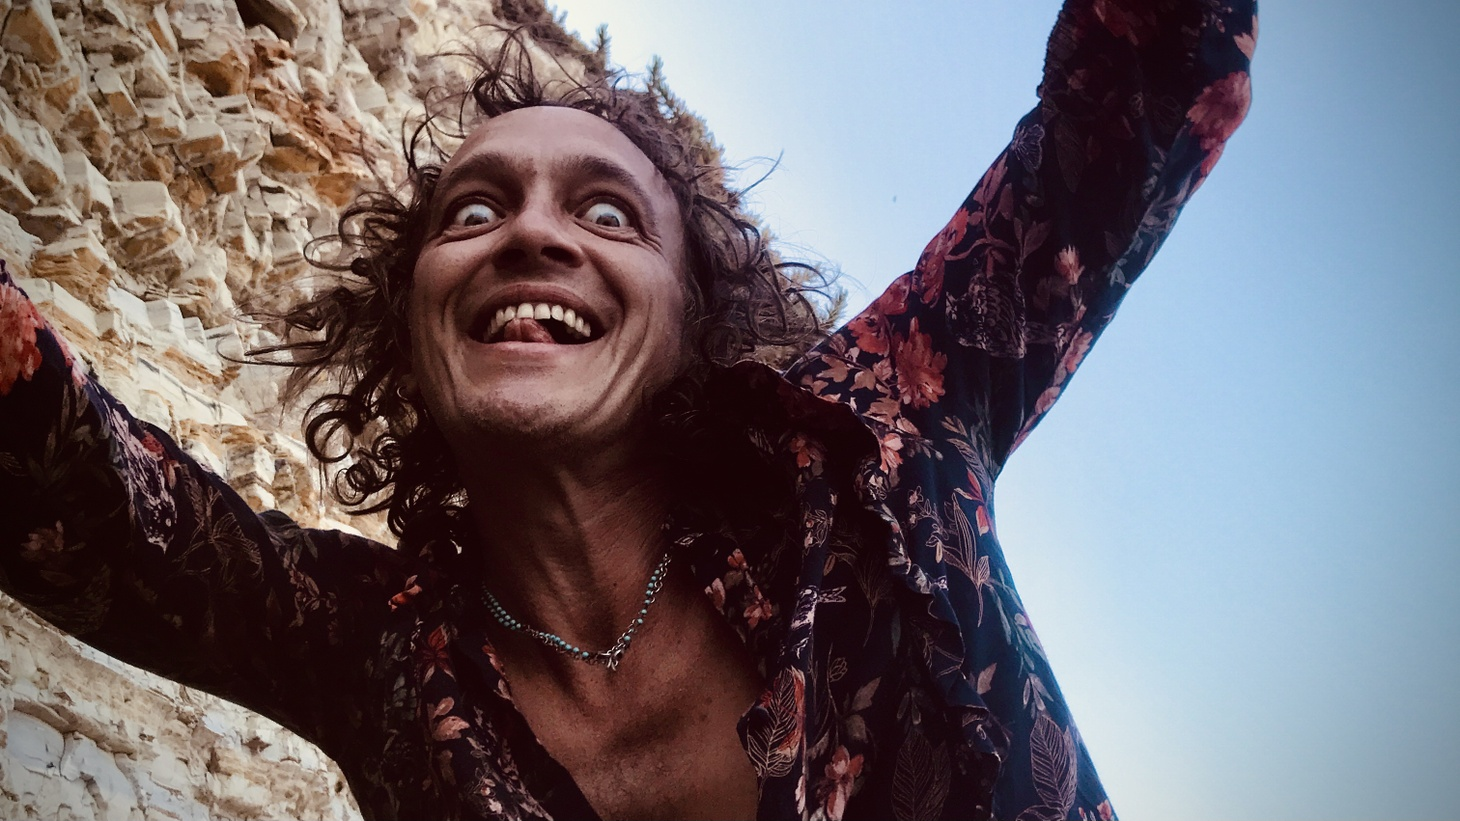 """Looking to feed your rock diet? Artist Aaron Embry gathers up some of his bandmates from Edward Sharpe and the Magnetic Zeros for a meat-n-potatoes grinder about being happy in the moment on """"Wannabe King."""""""